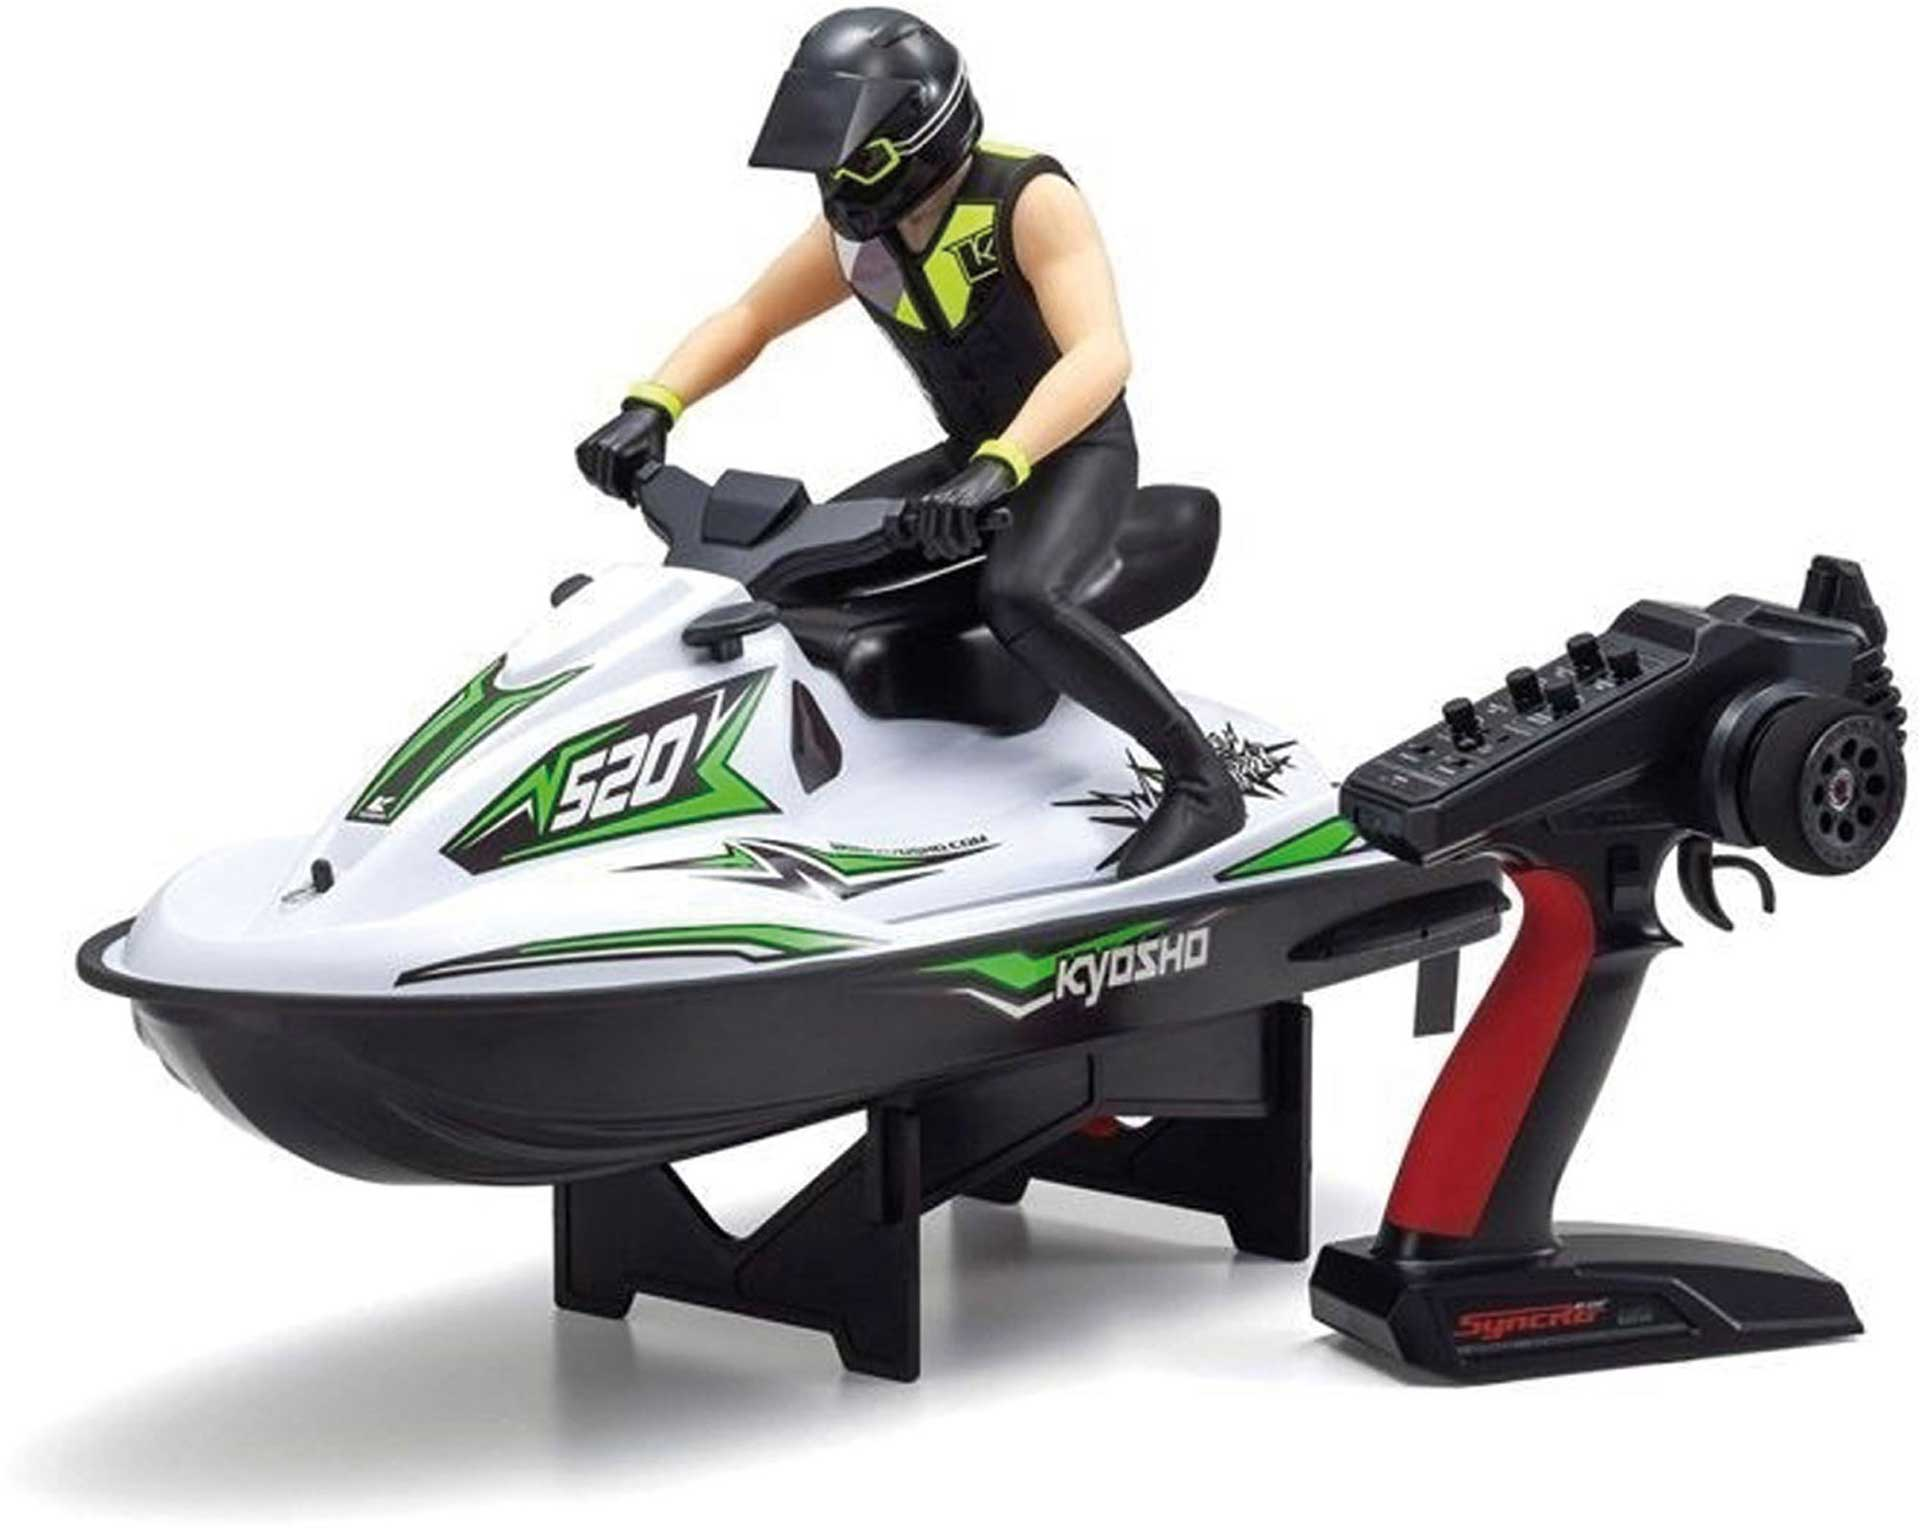 KYOSHO WAVE CHOPPER 2.0 T1 Green Readyset